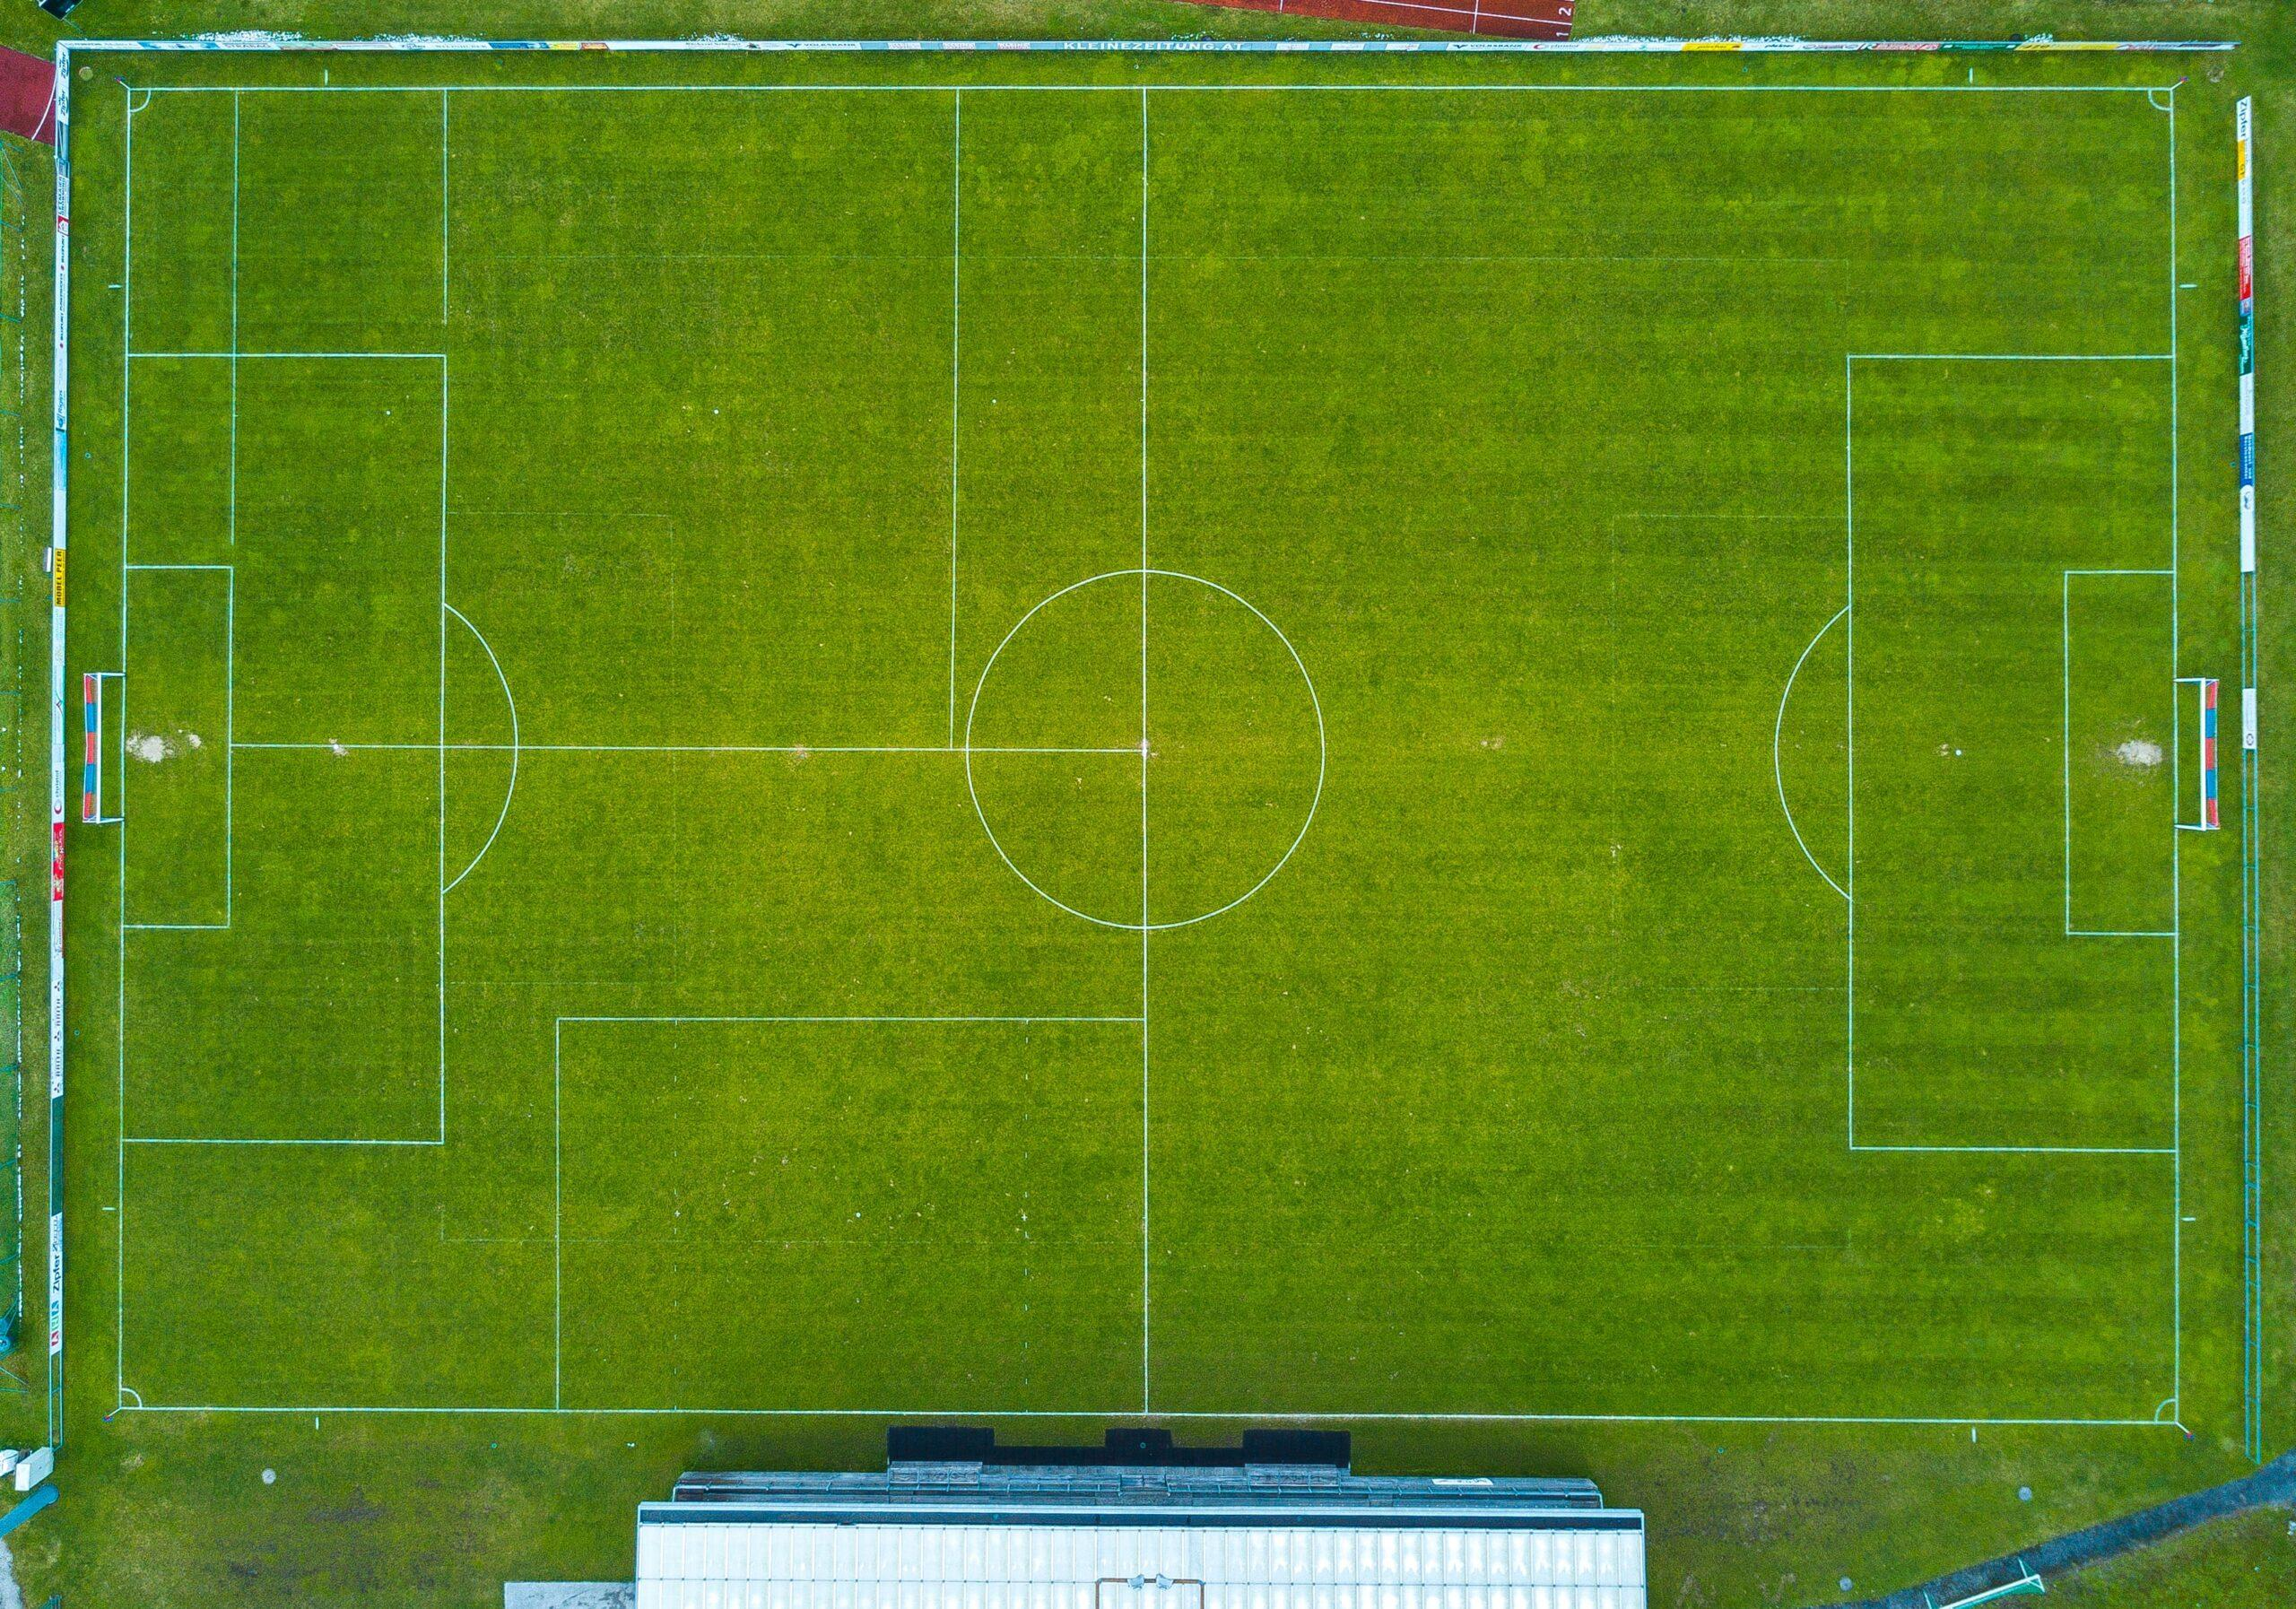 aerial photo of soccer field